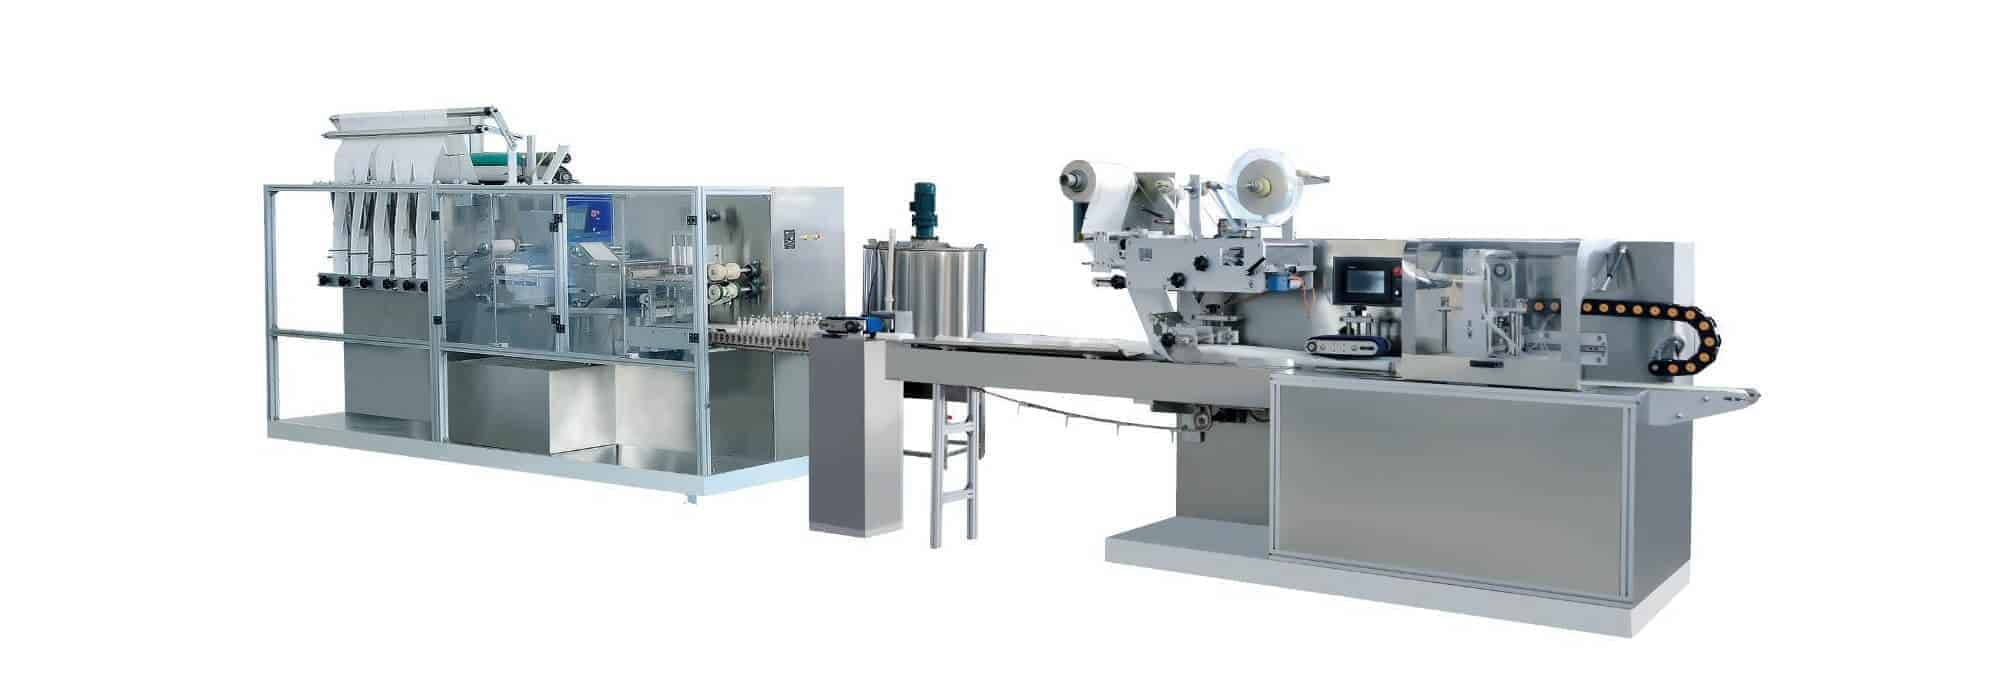 DH 6F Automatic wet wipes production line - DH-6F Automatic wet wipes production line (30-120pcs/pack)